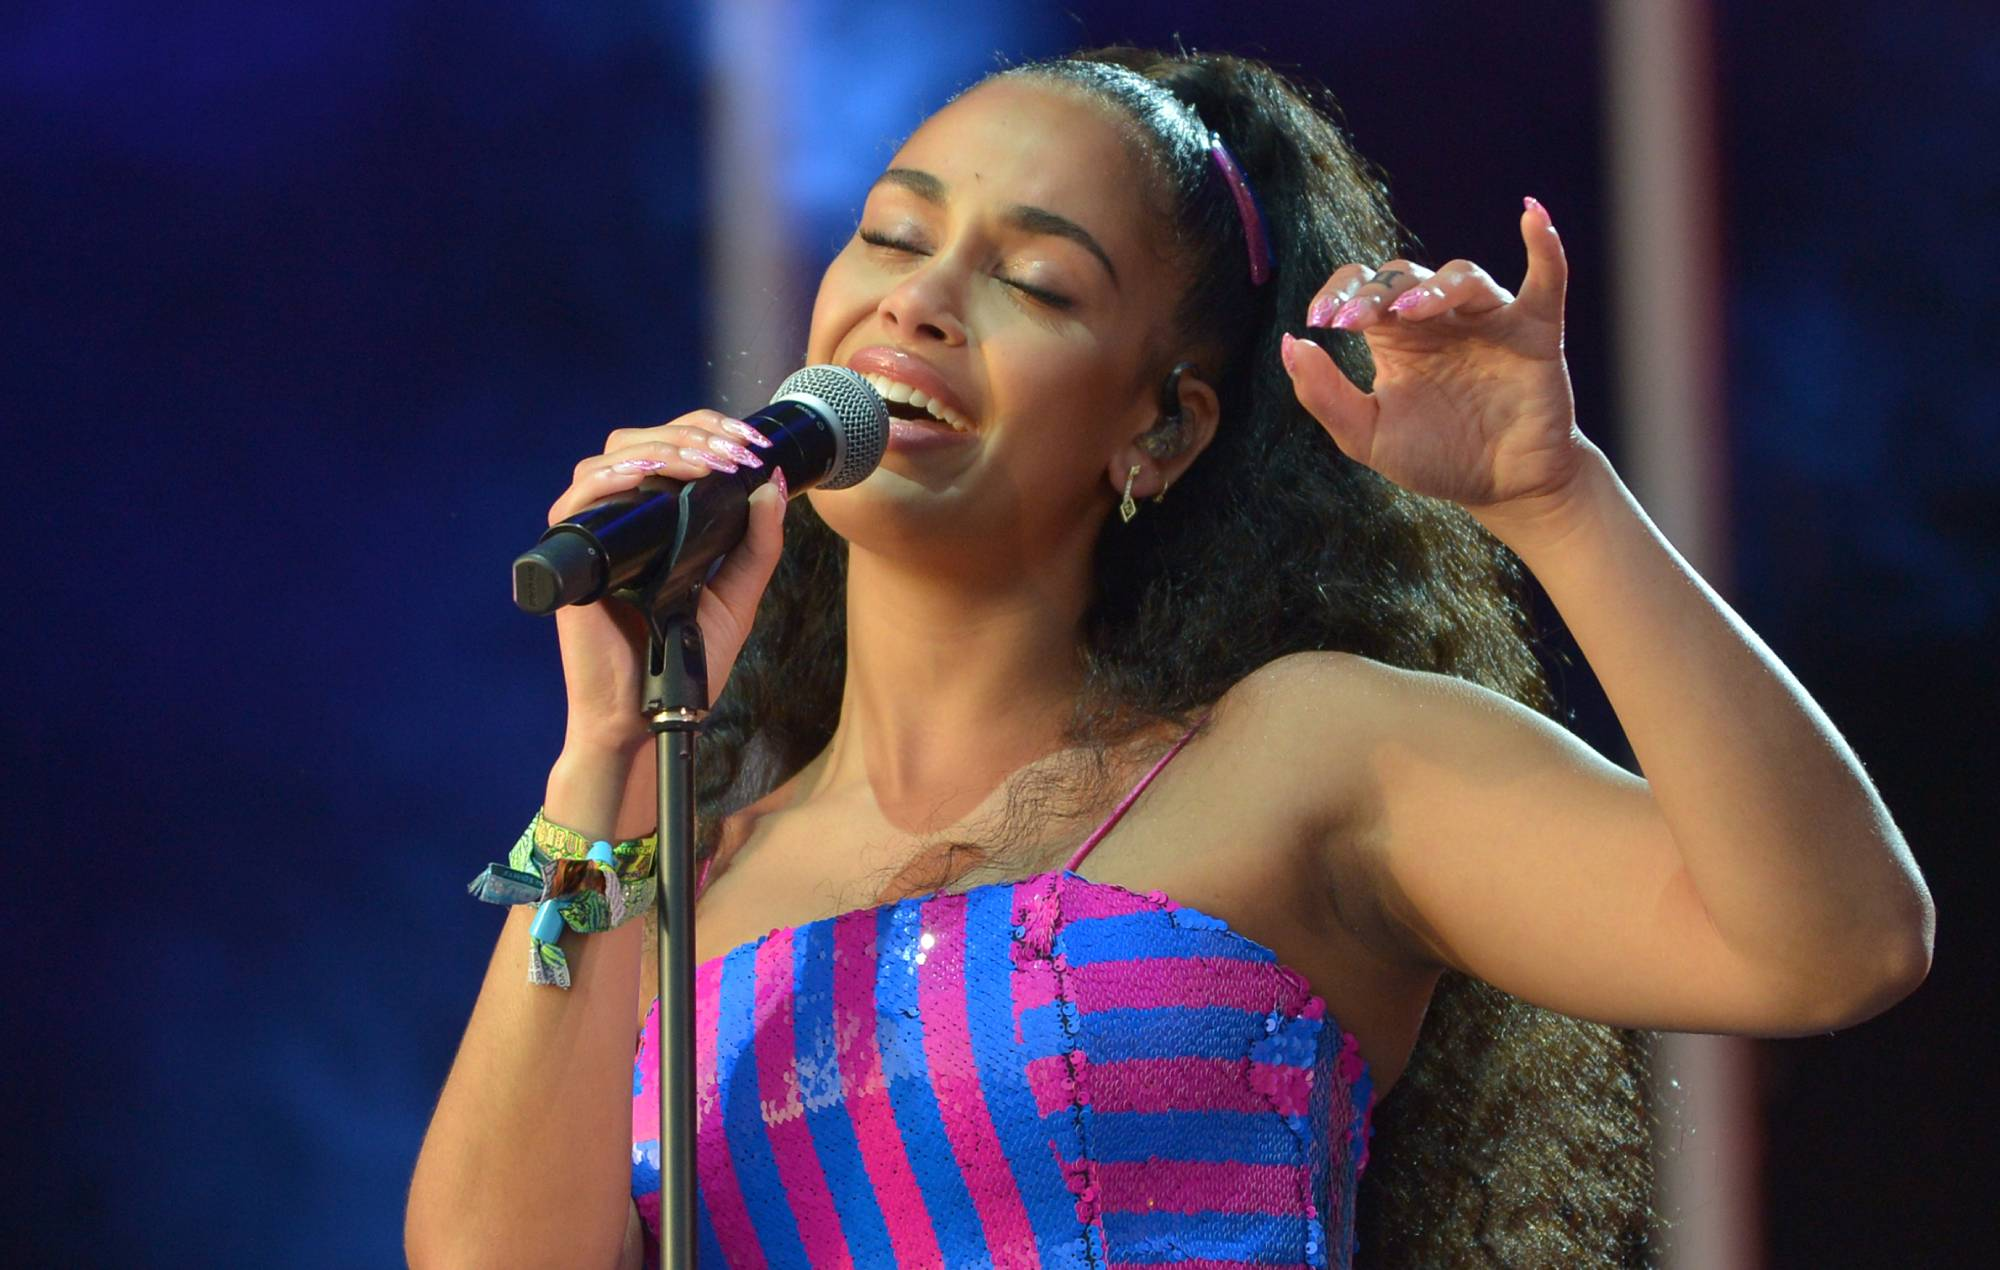 Jorja Smith launches BBC Radio 3 series 'Tearjerker' about the healing power of music